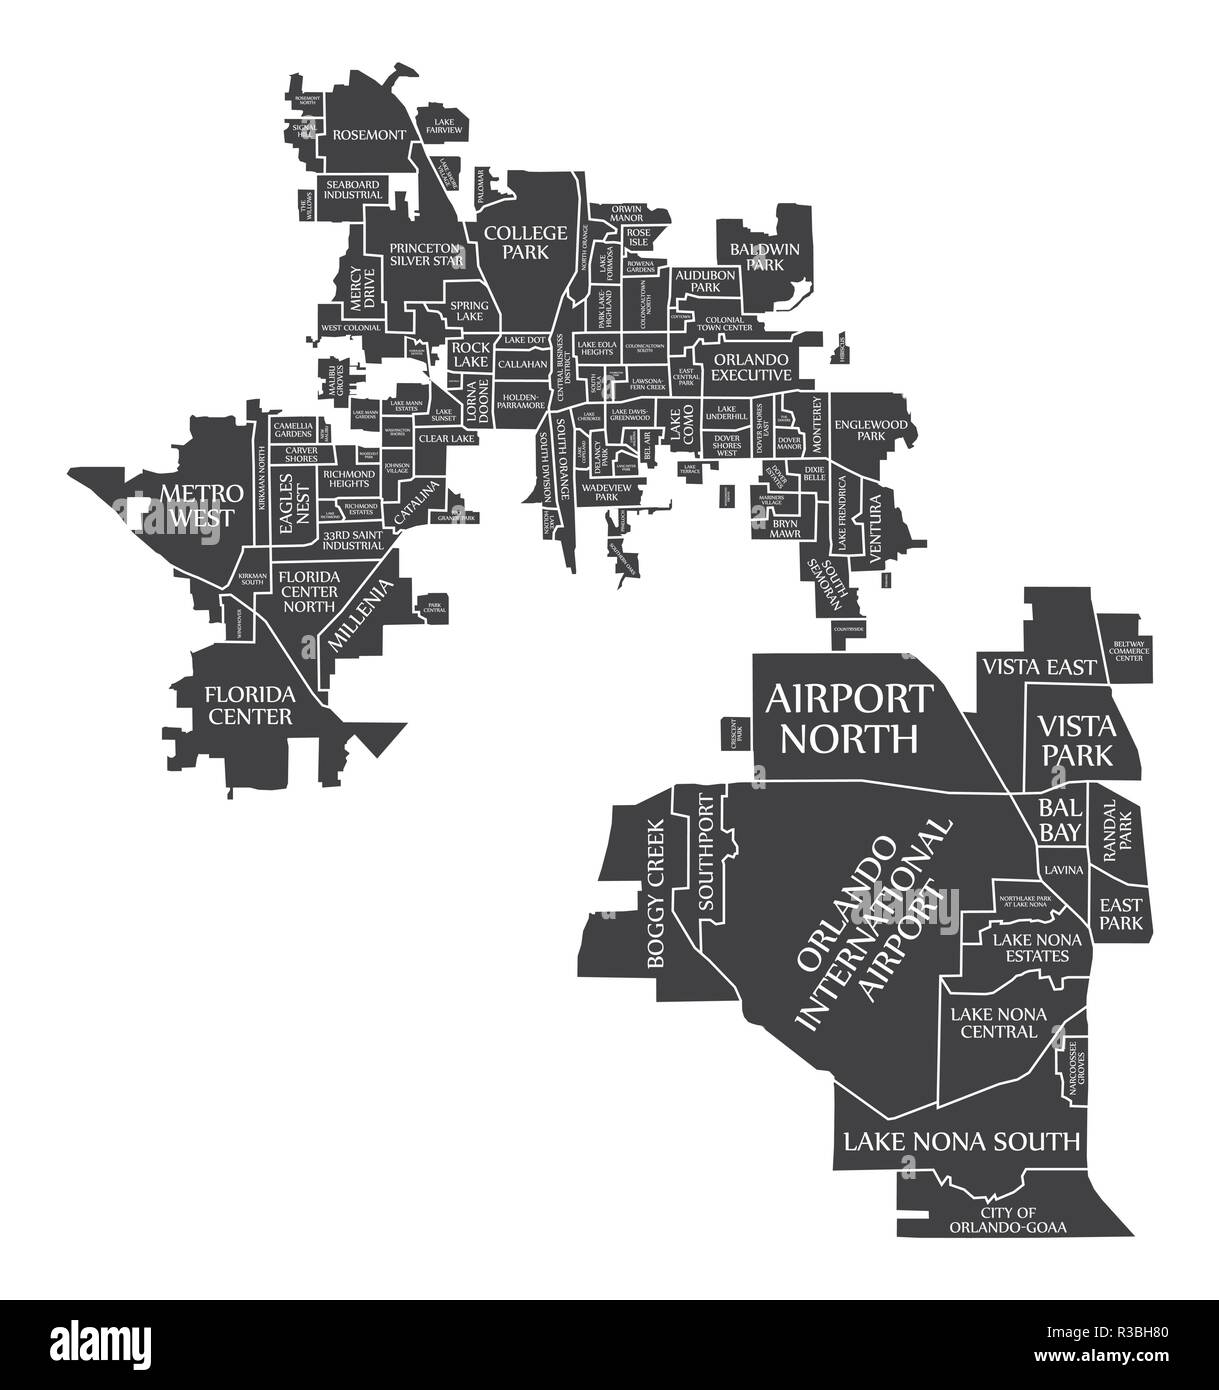 Florida City Map.Orlando Florida City Map Usa Labelled Black Illustration Stock